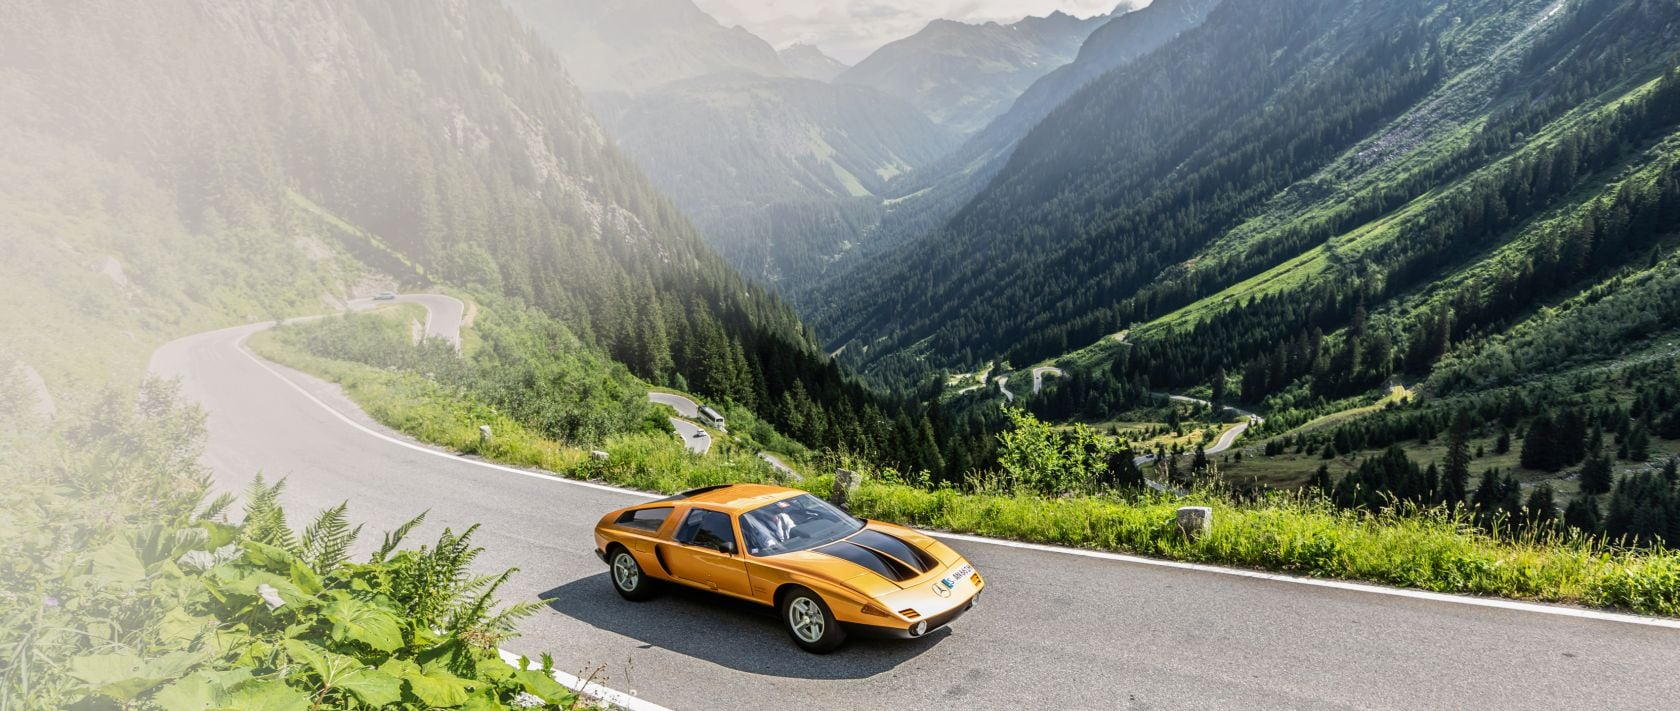 "In the field comprising almost 200 vehicles, the Mercedes-Benz C 111-II from 1970 was the star not only because of its ""weissherbst"" paint job."